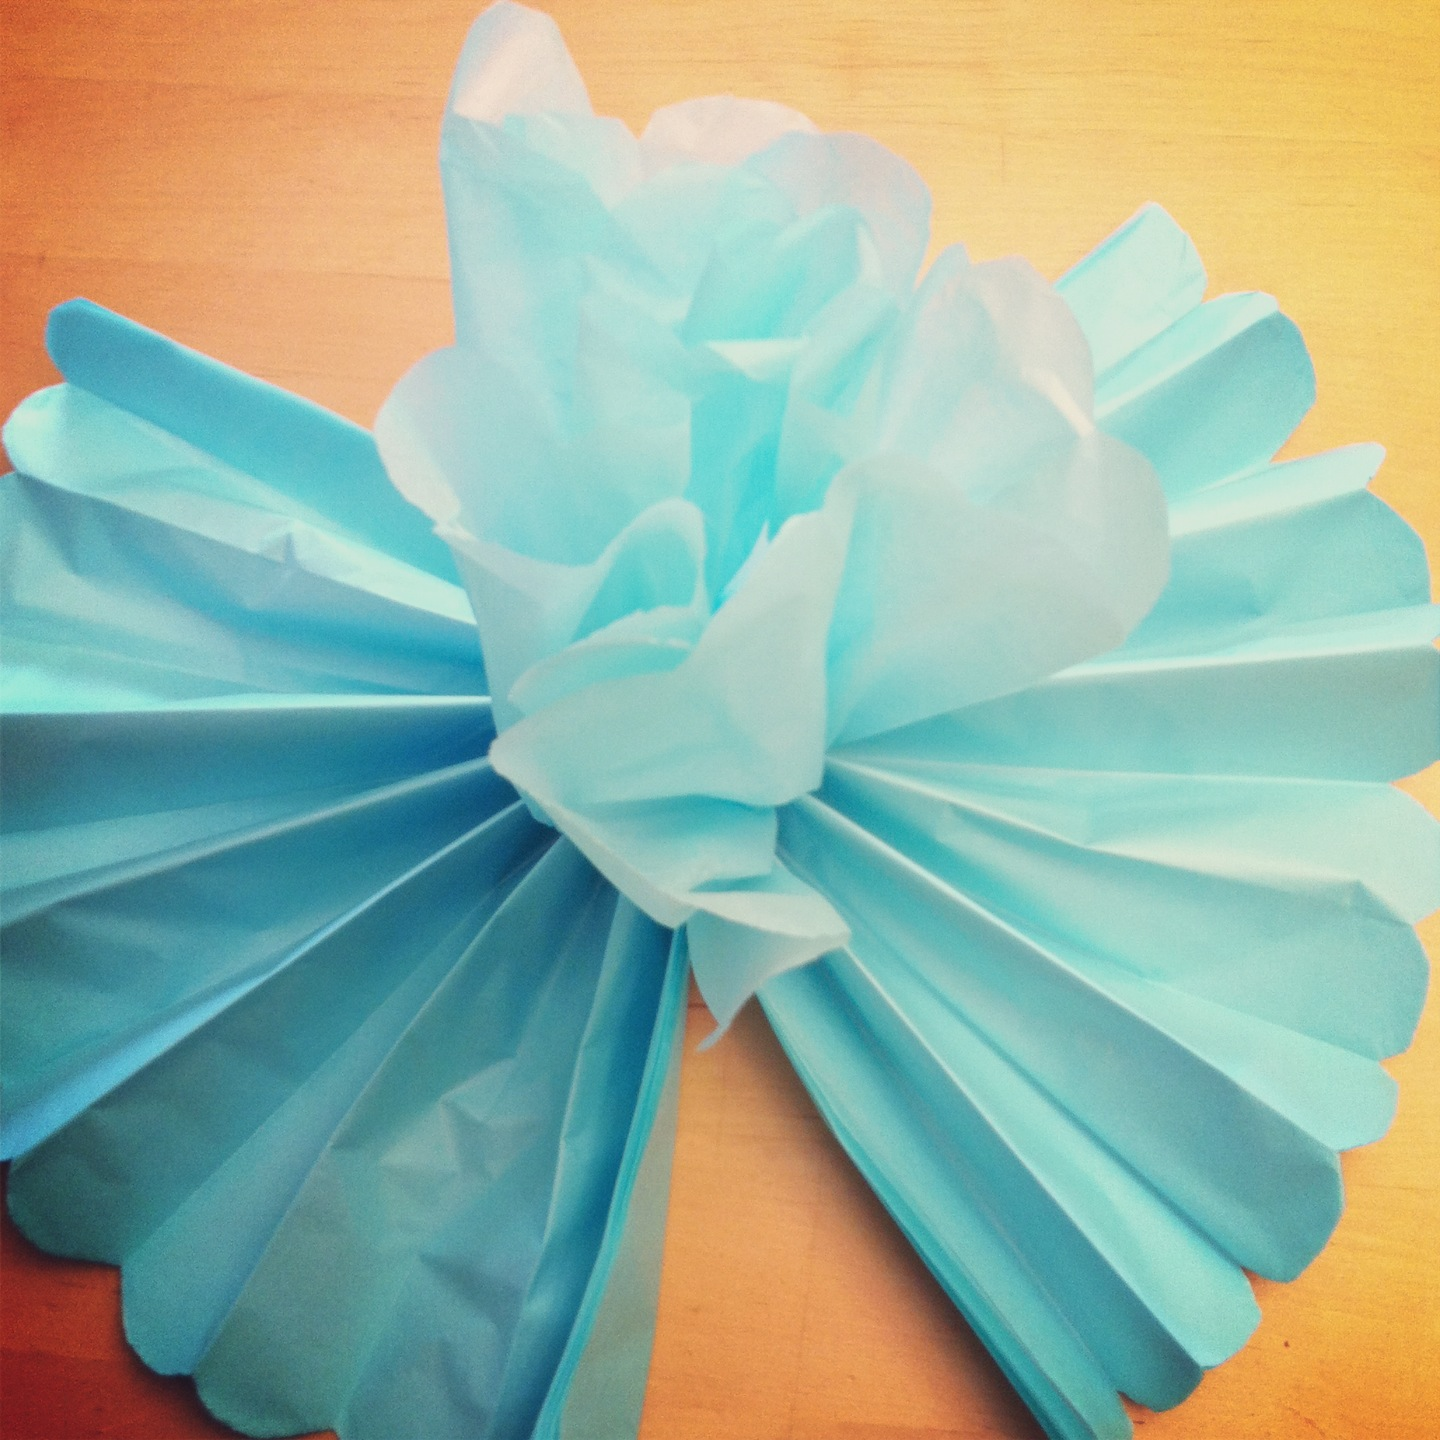 Large tissue paper flowers for sale coursework academic service large tissue paper flowers for sale how to make giant tissue paper flowers the crafty mom mightylinksfo